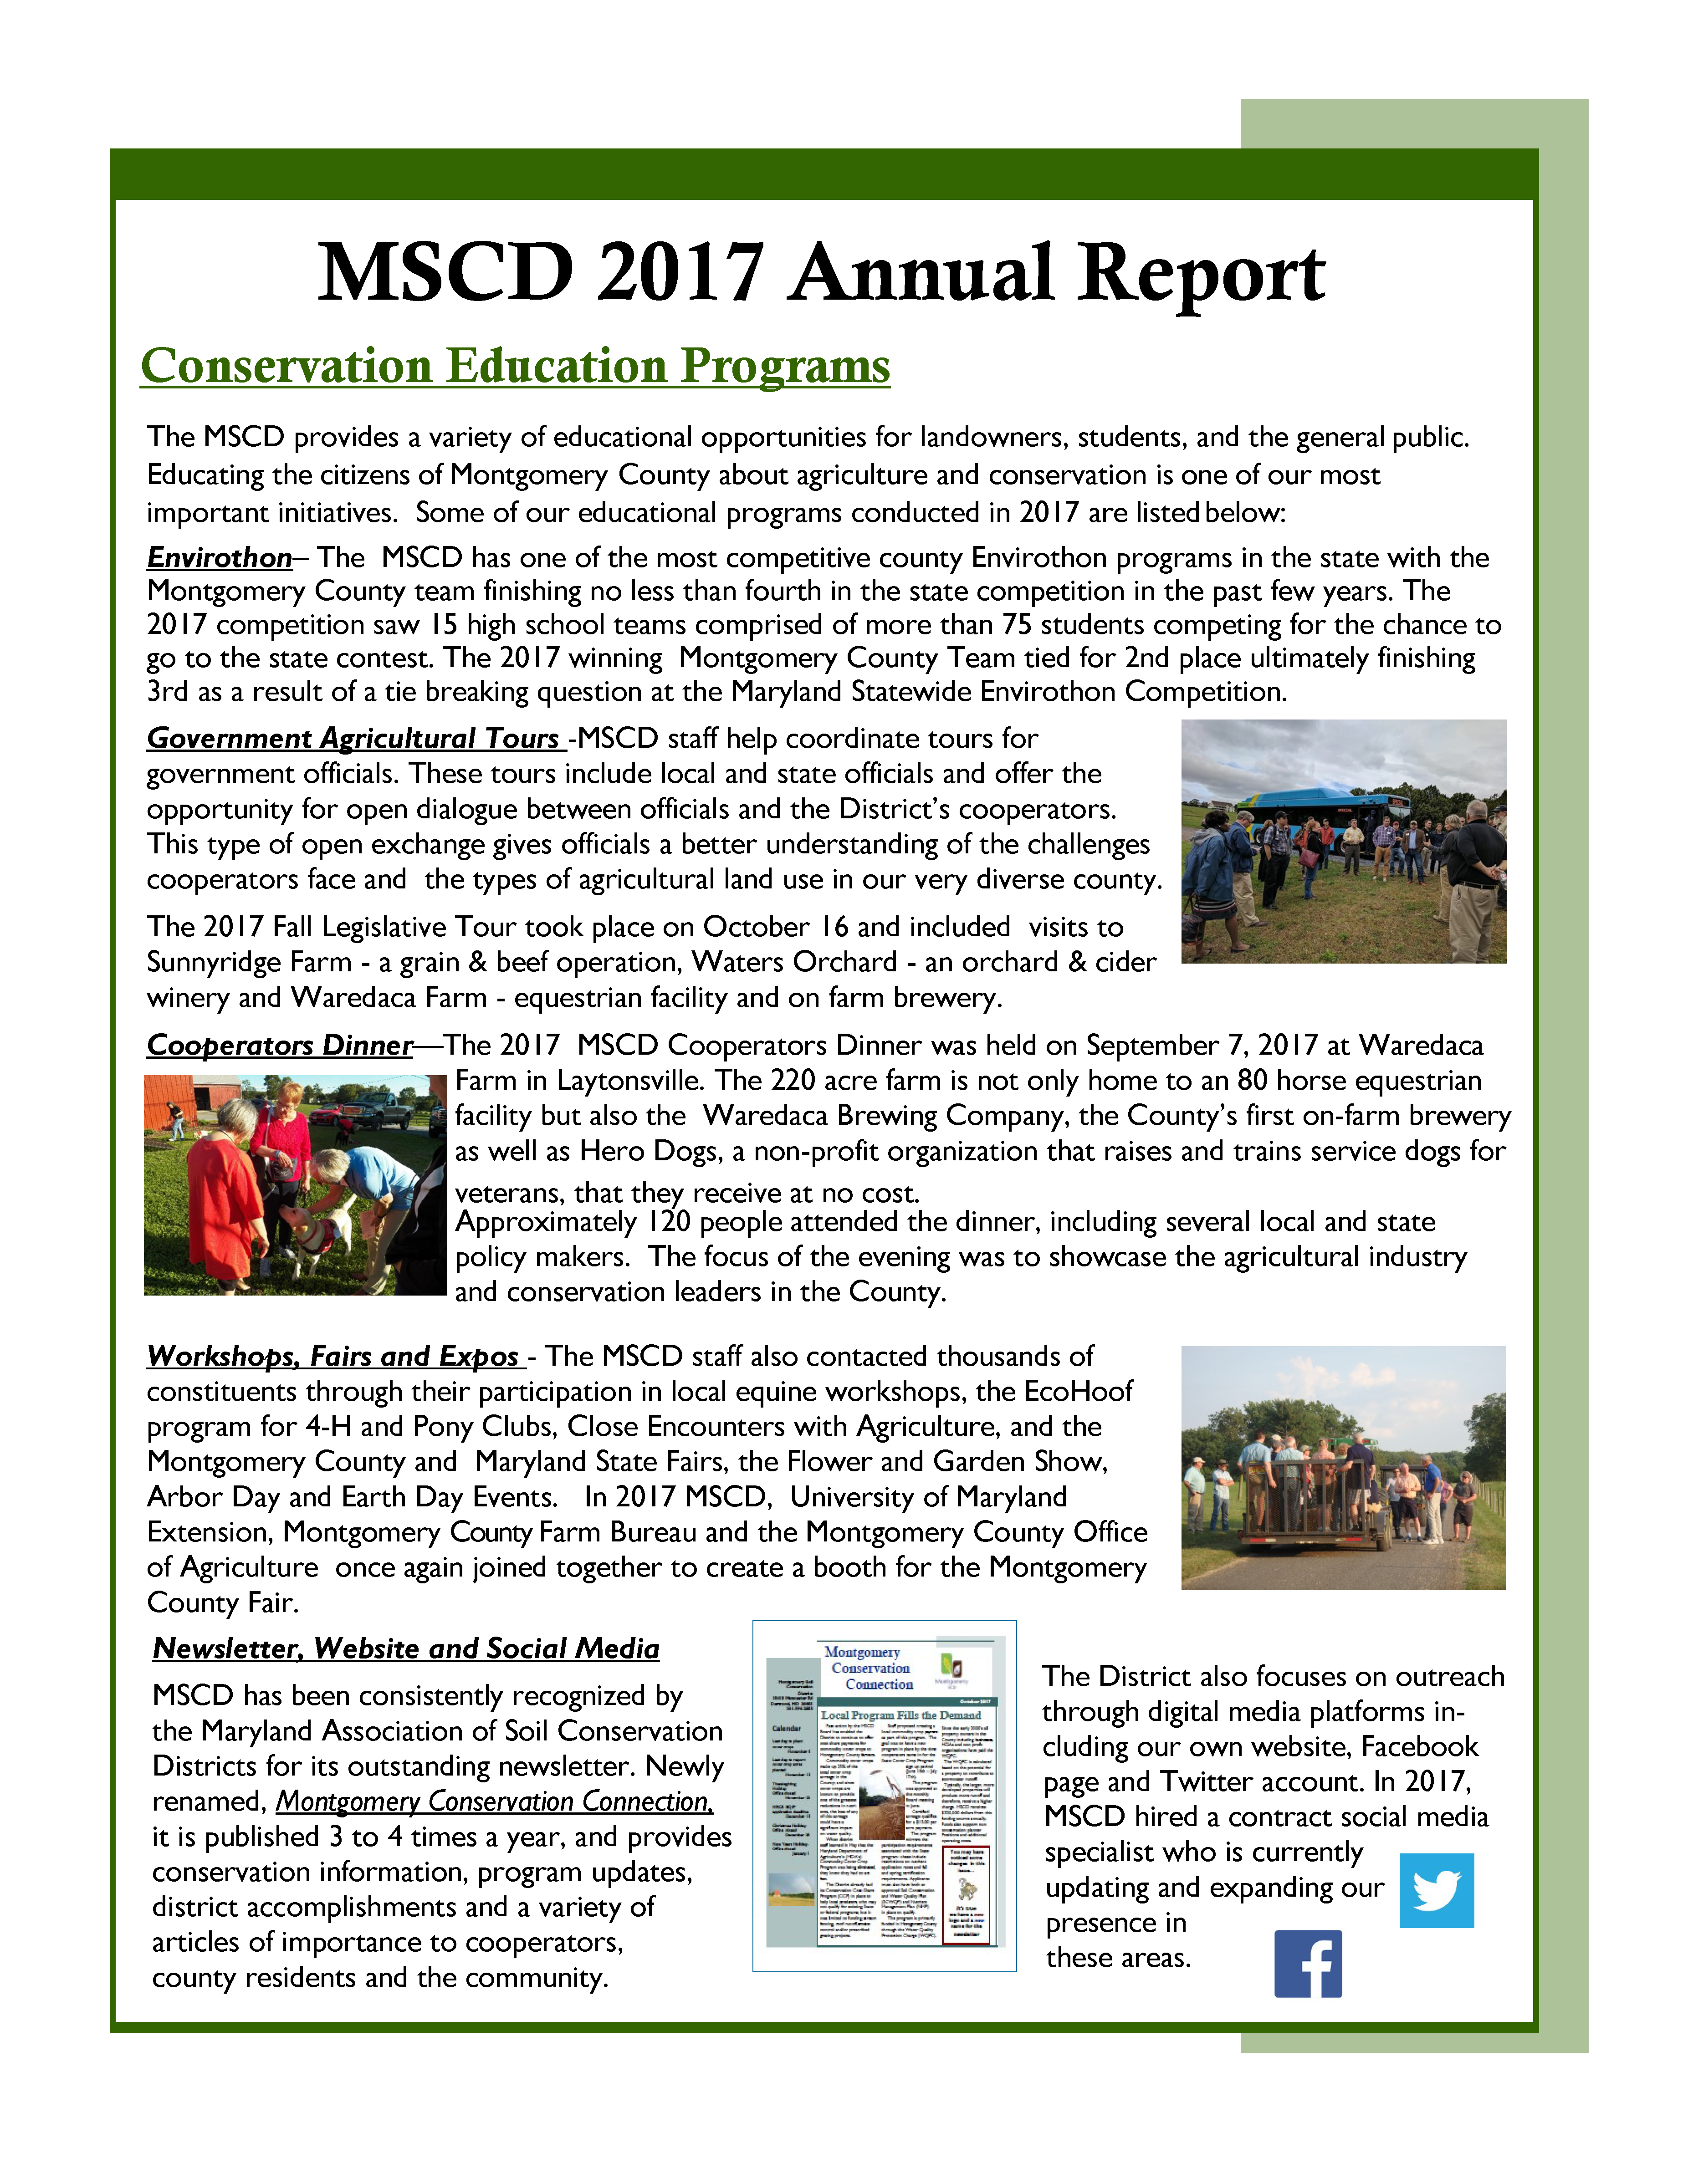 2017 Annual report_Page_3